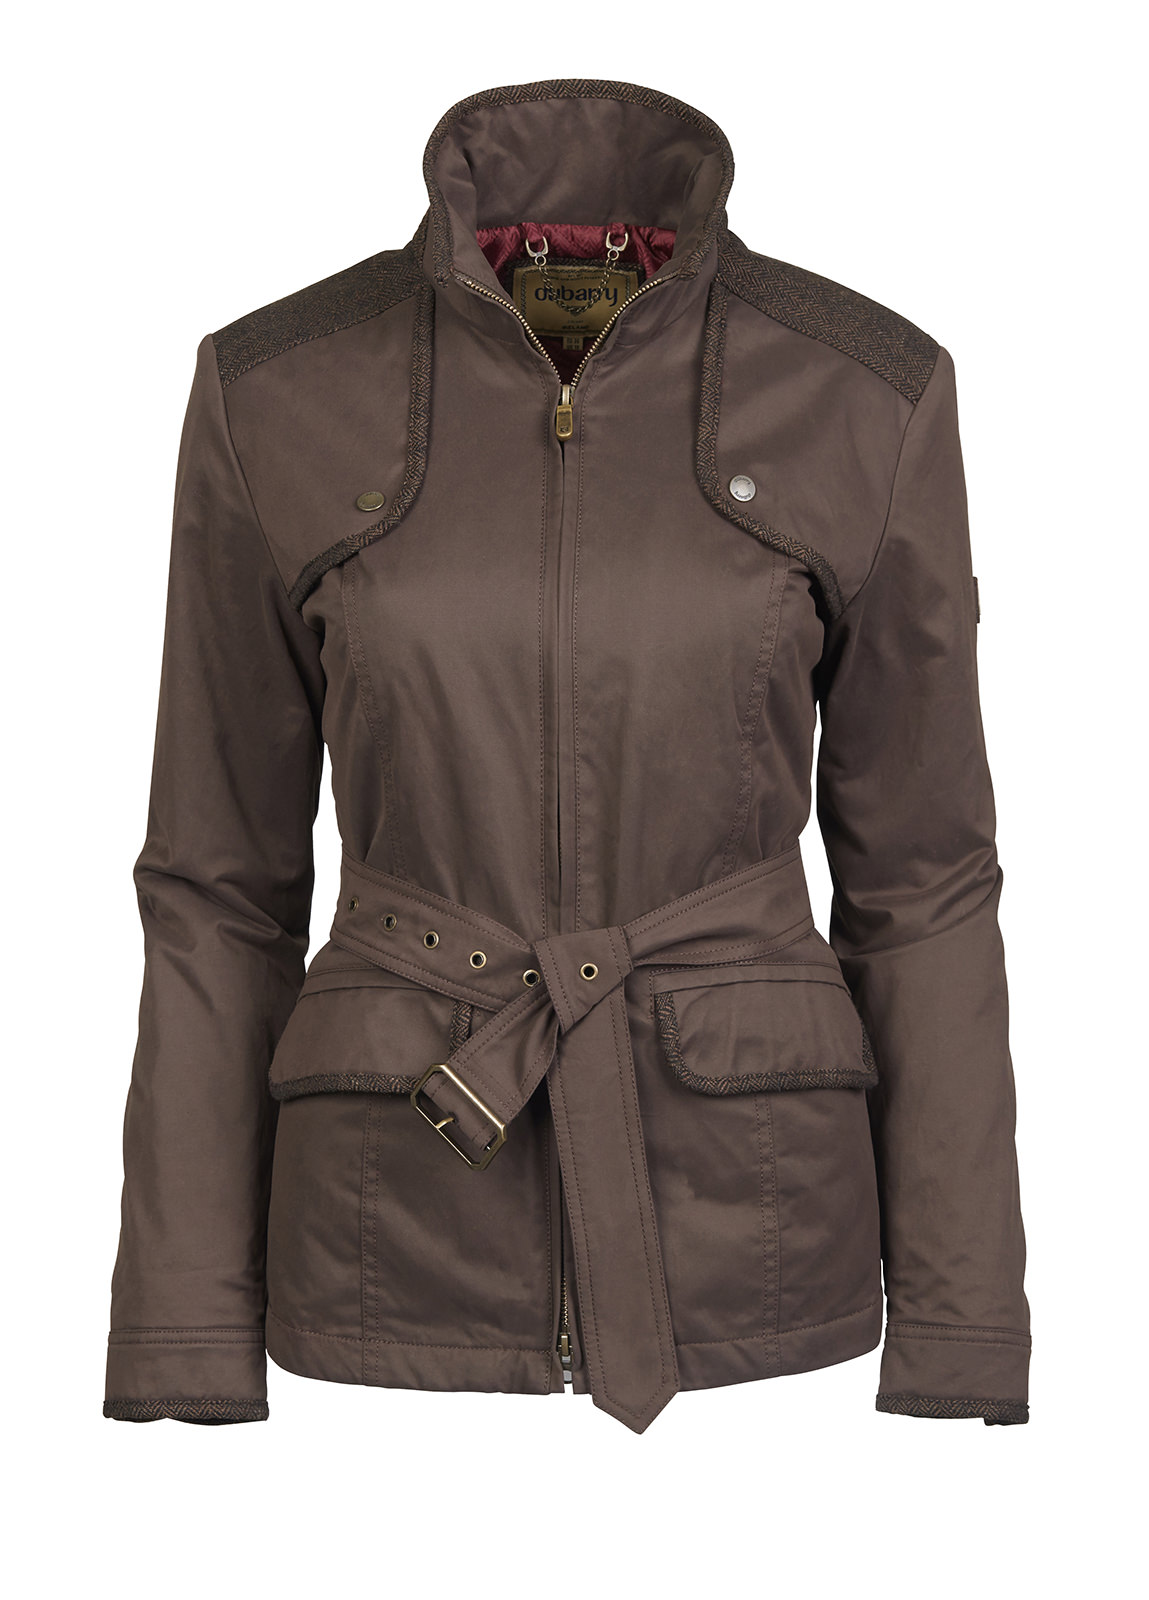 Dubarry_ Enright Belted Jacket - Bourbon_Image_2